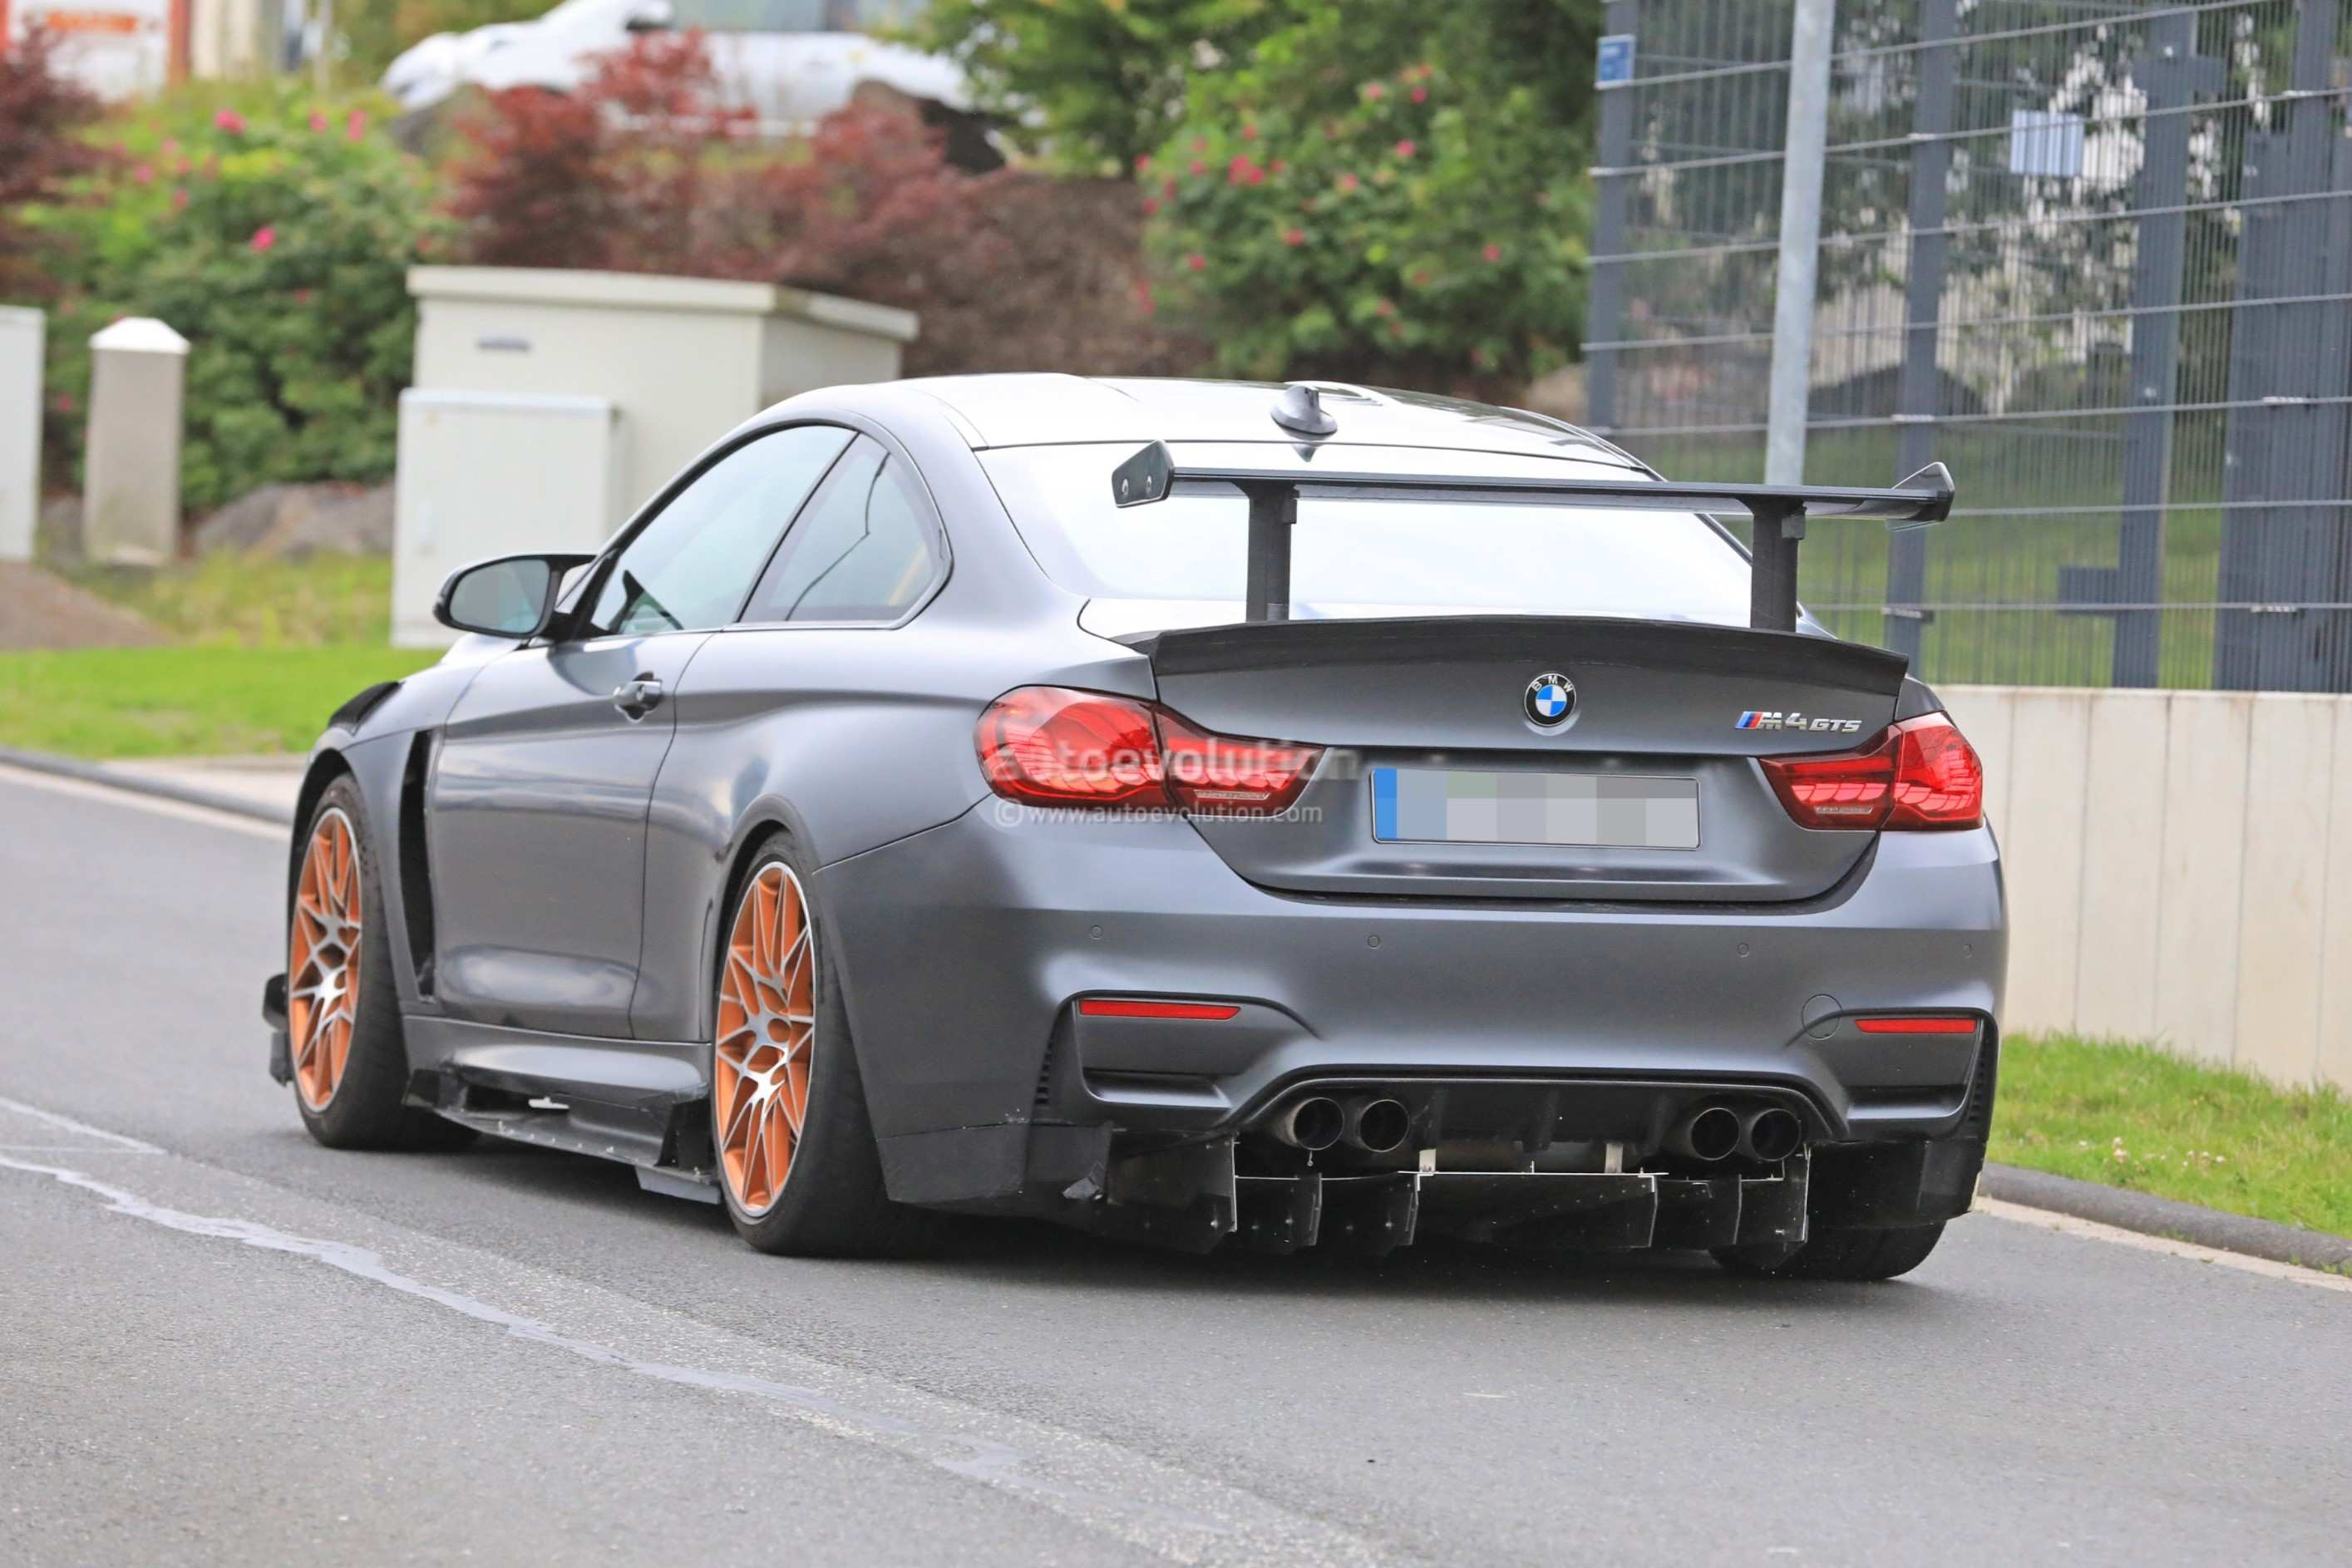 45 Best Review 2019 Bmw M4 Gts Price for 2019 Bmw M4 Gts